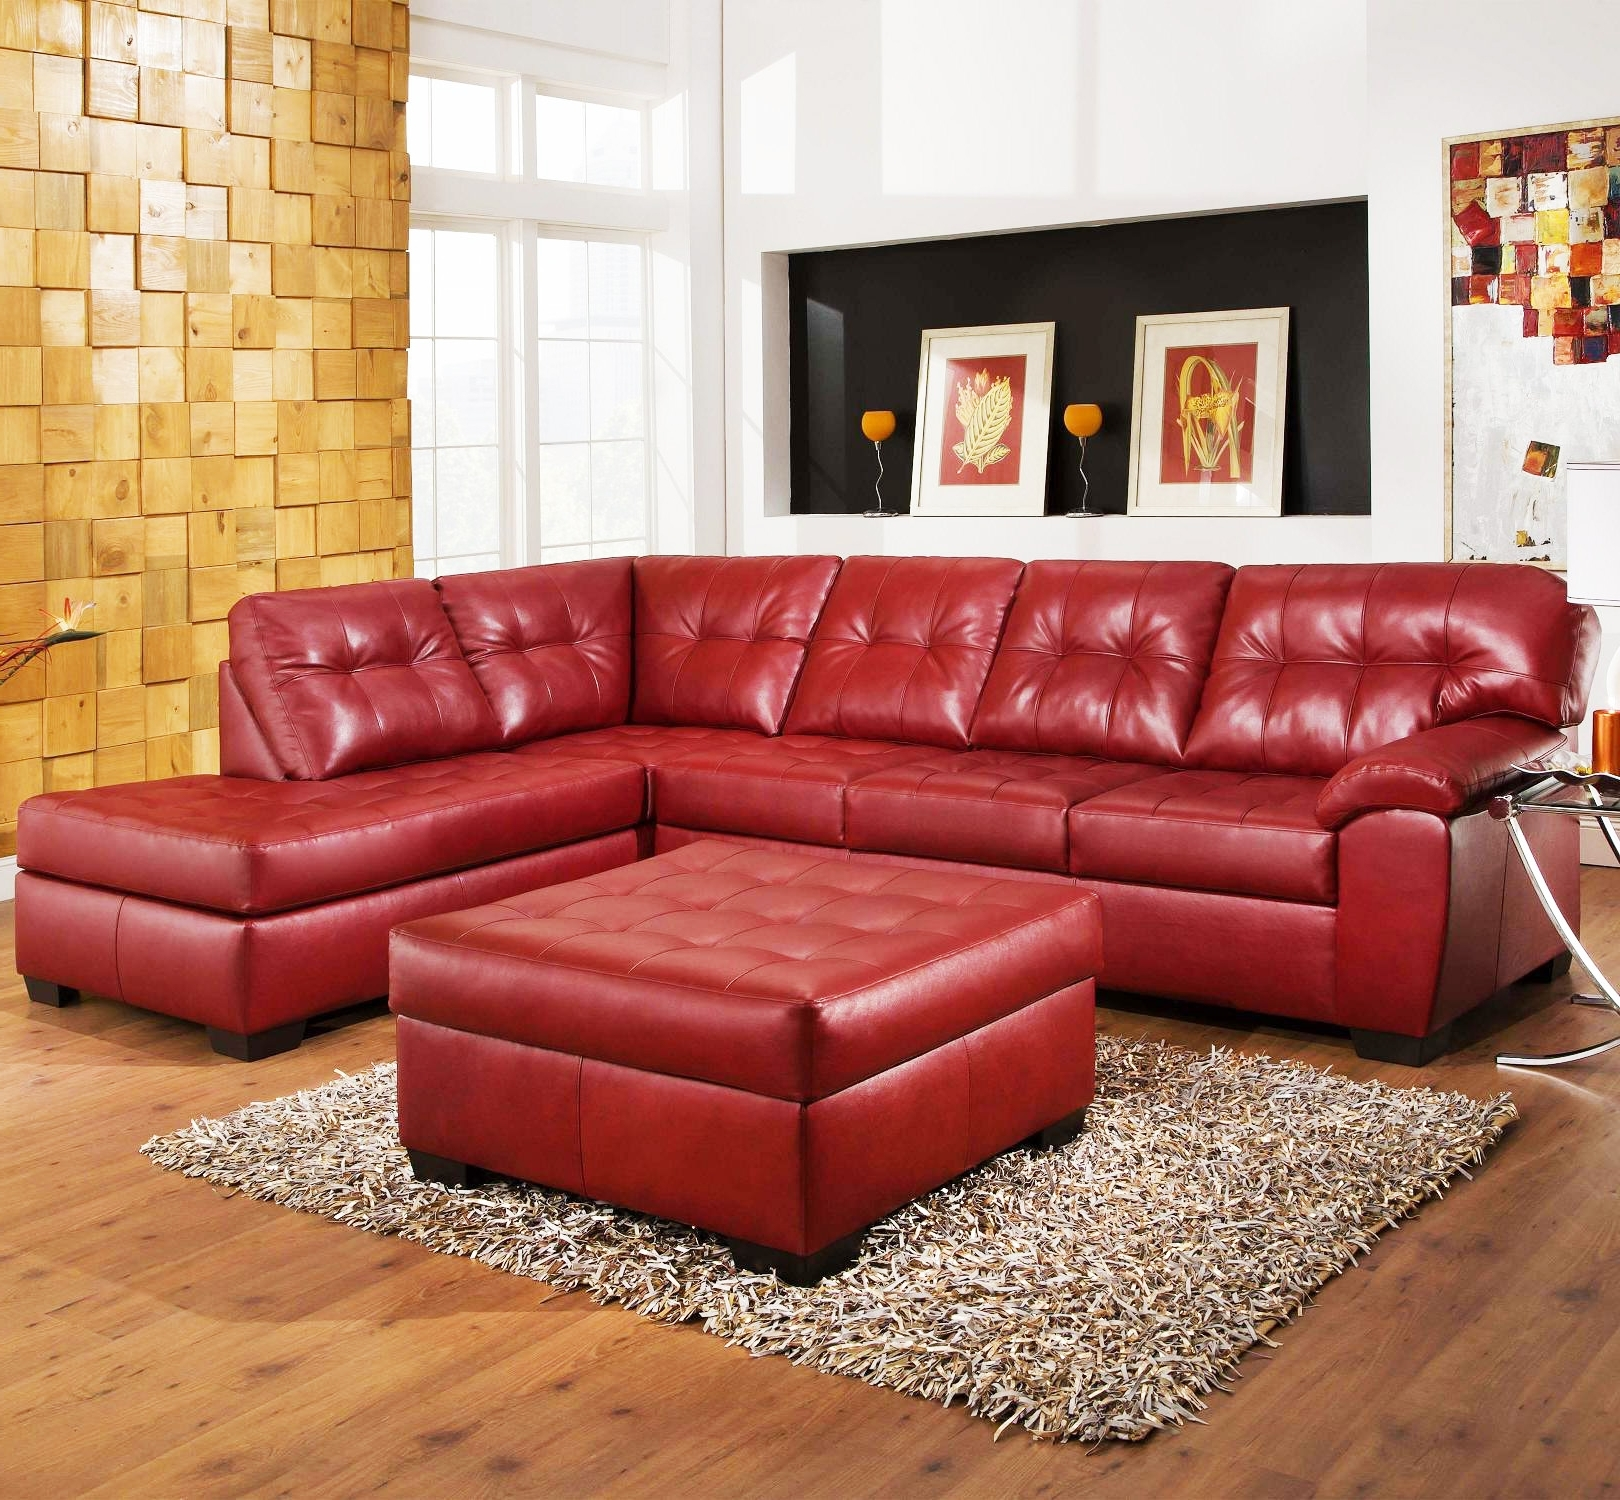 Sofas : Sectional Couch Small Sectional Couch Red Sectional Couch Intended For Preferred Red Leather Couches (View 10 of 20)